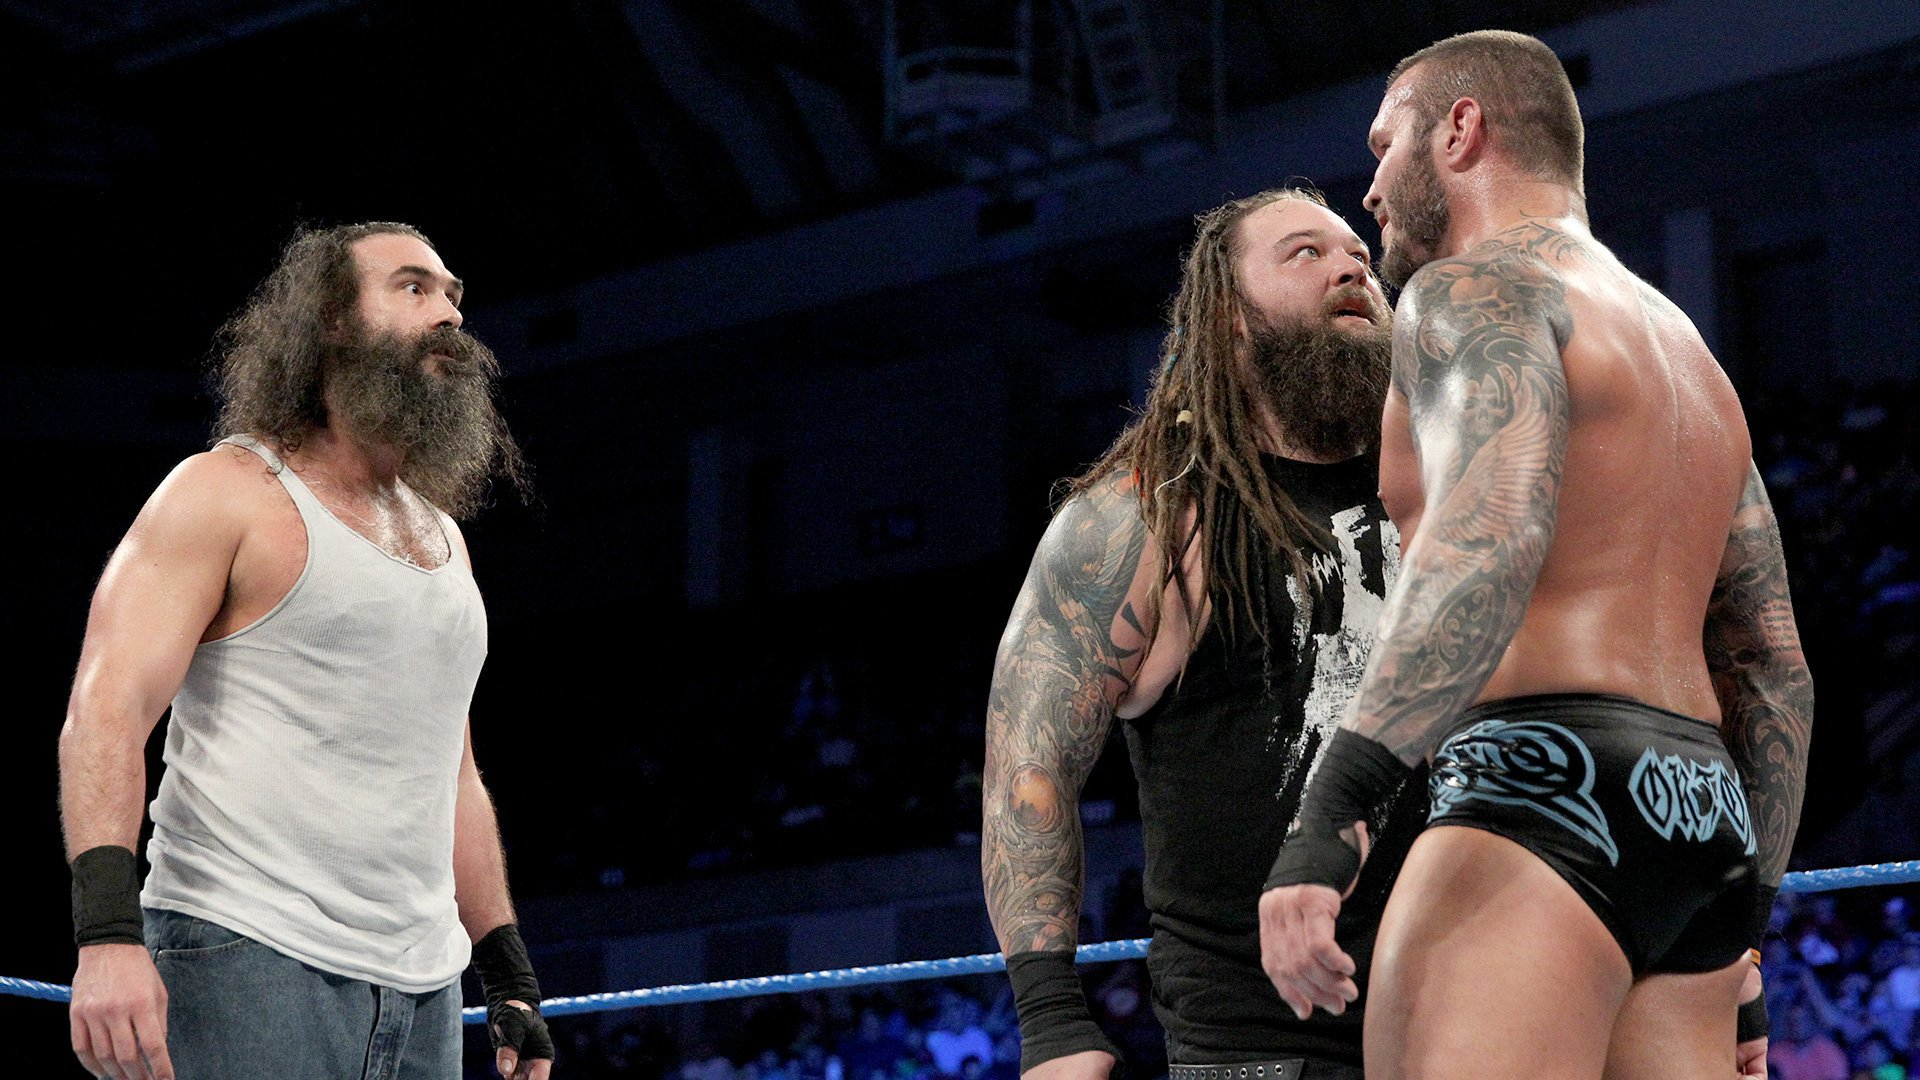 Bray rises and stares down both of his followers before promptly exiting.